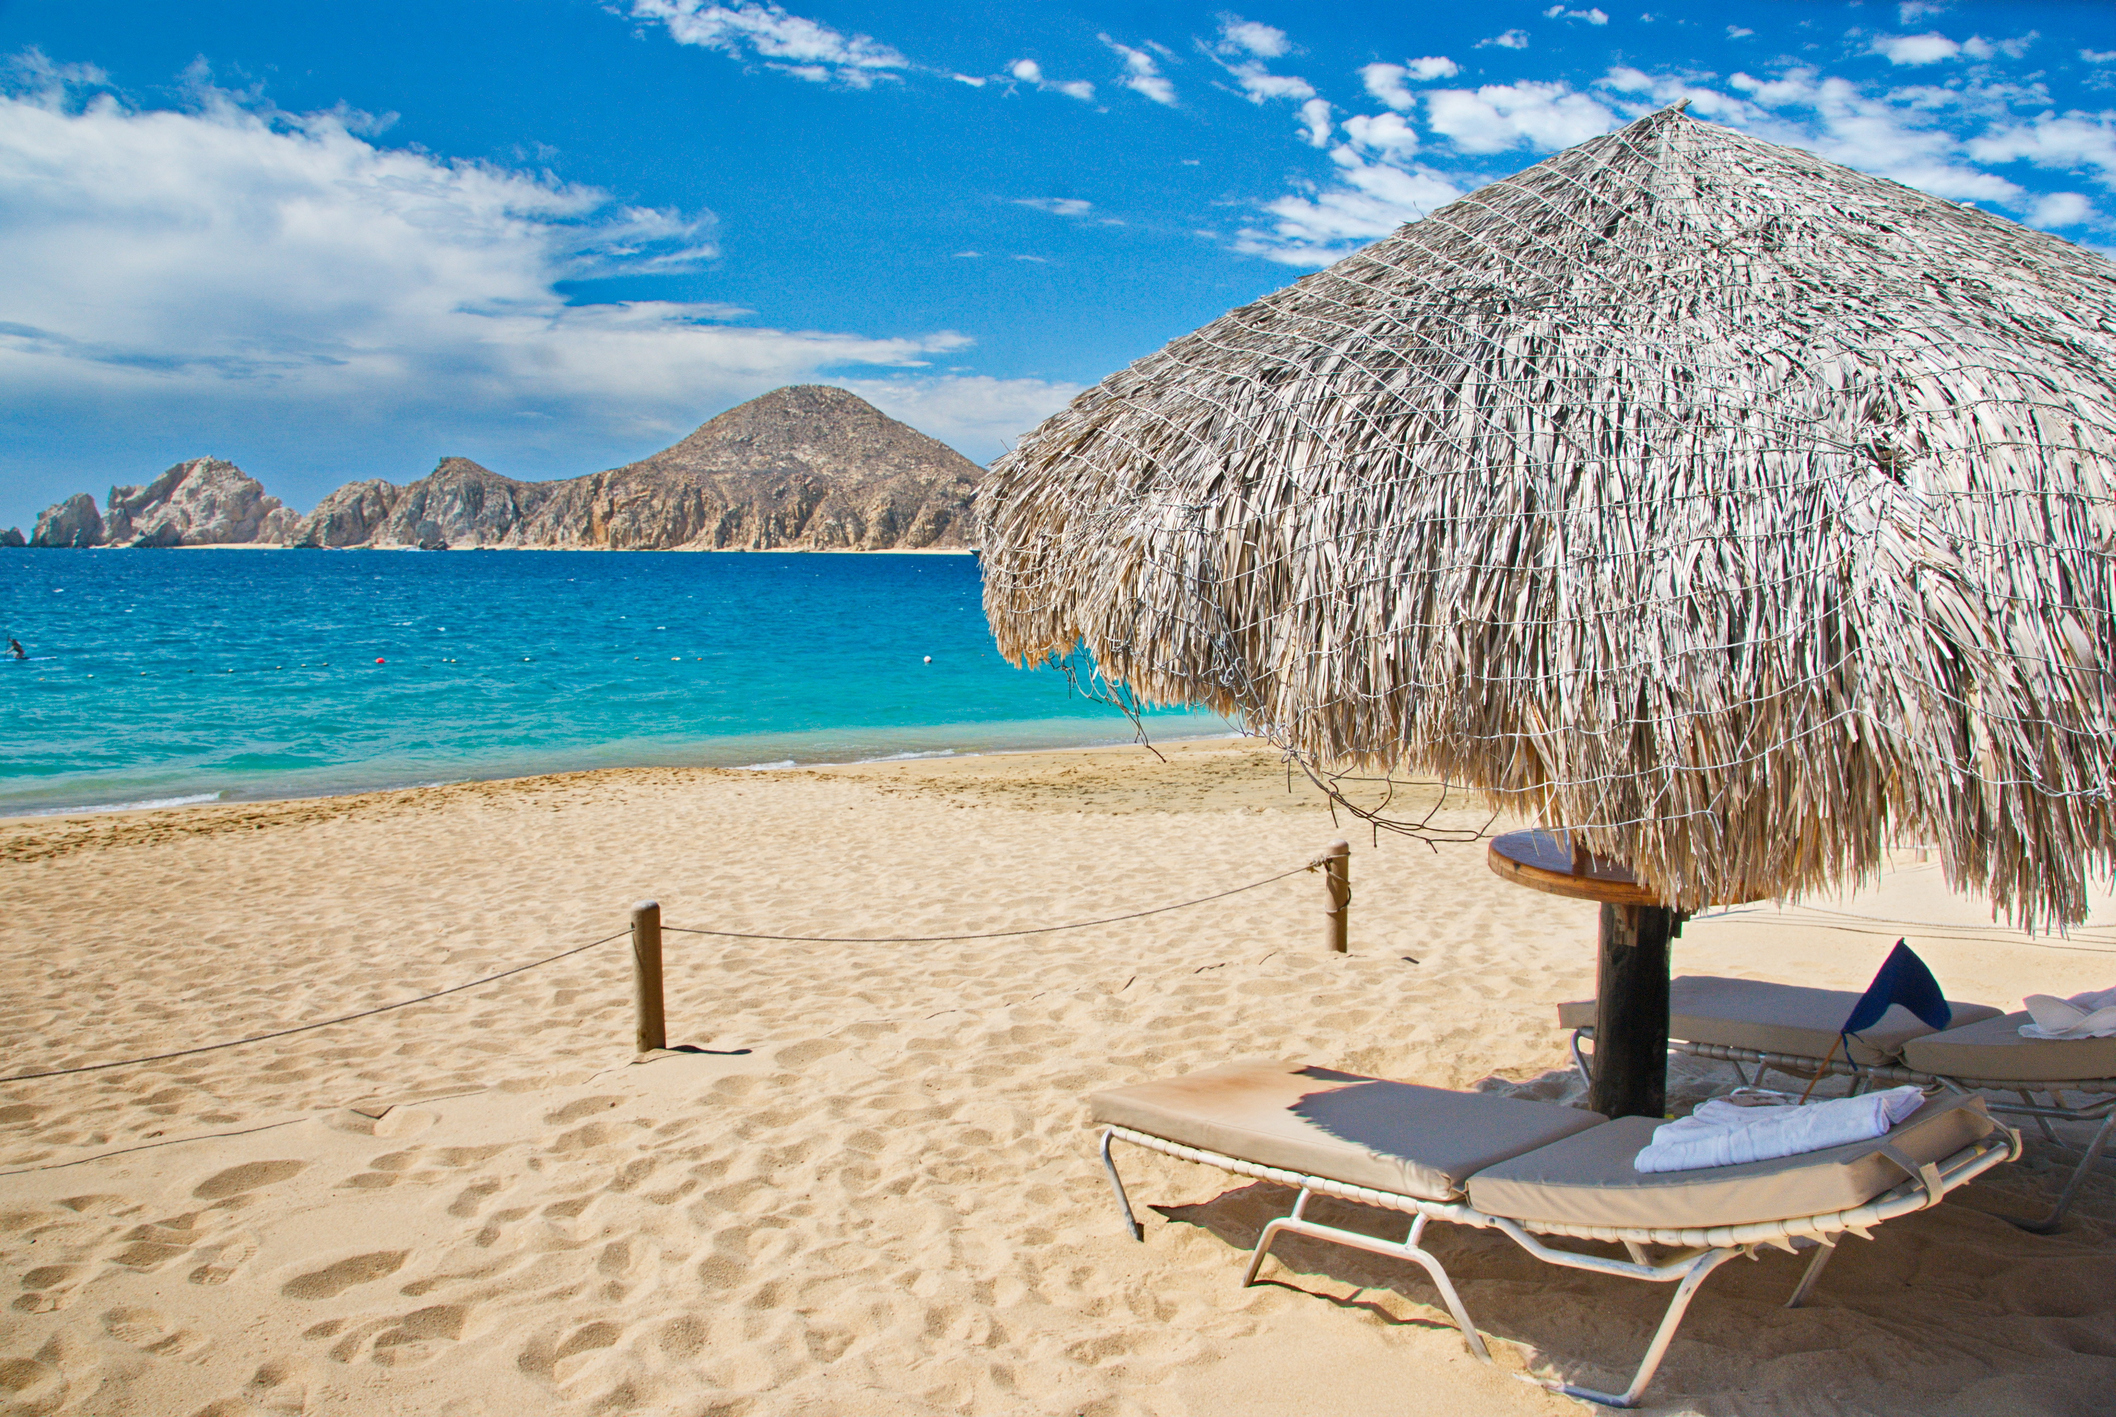 Beach location with chaise and umbrella for relaxation in Cabo San Lucas, Mexico with mountains in view across the water. (Photo: ©iStockphoto.com/JulieHewitt)